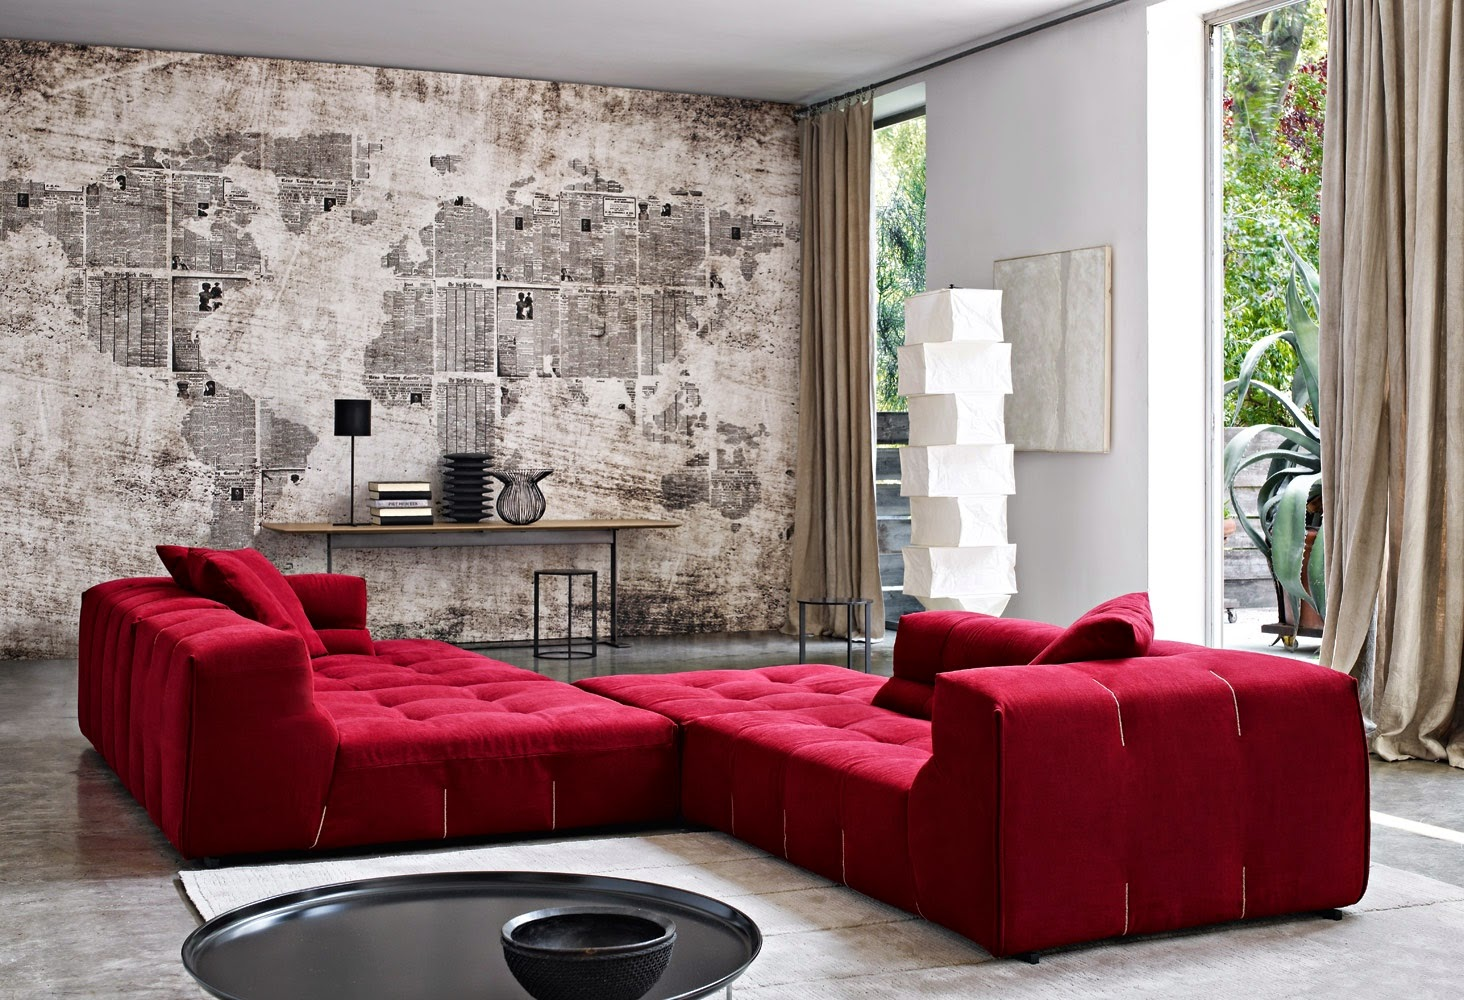 Model sofa bed warna merah dari Kulit